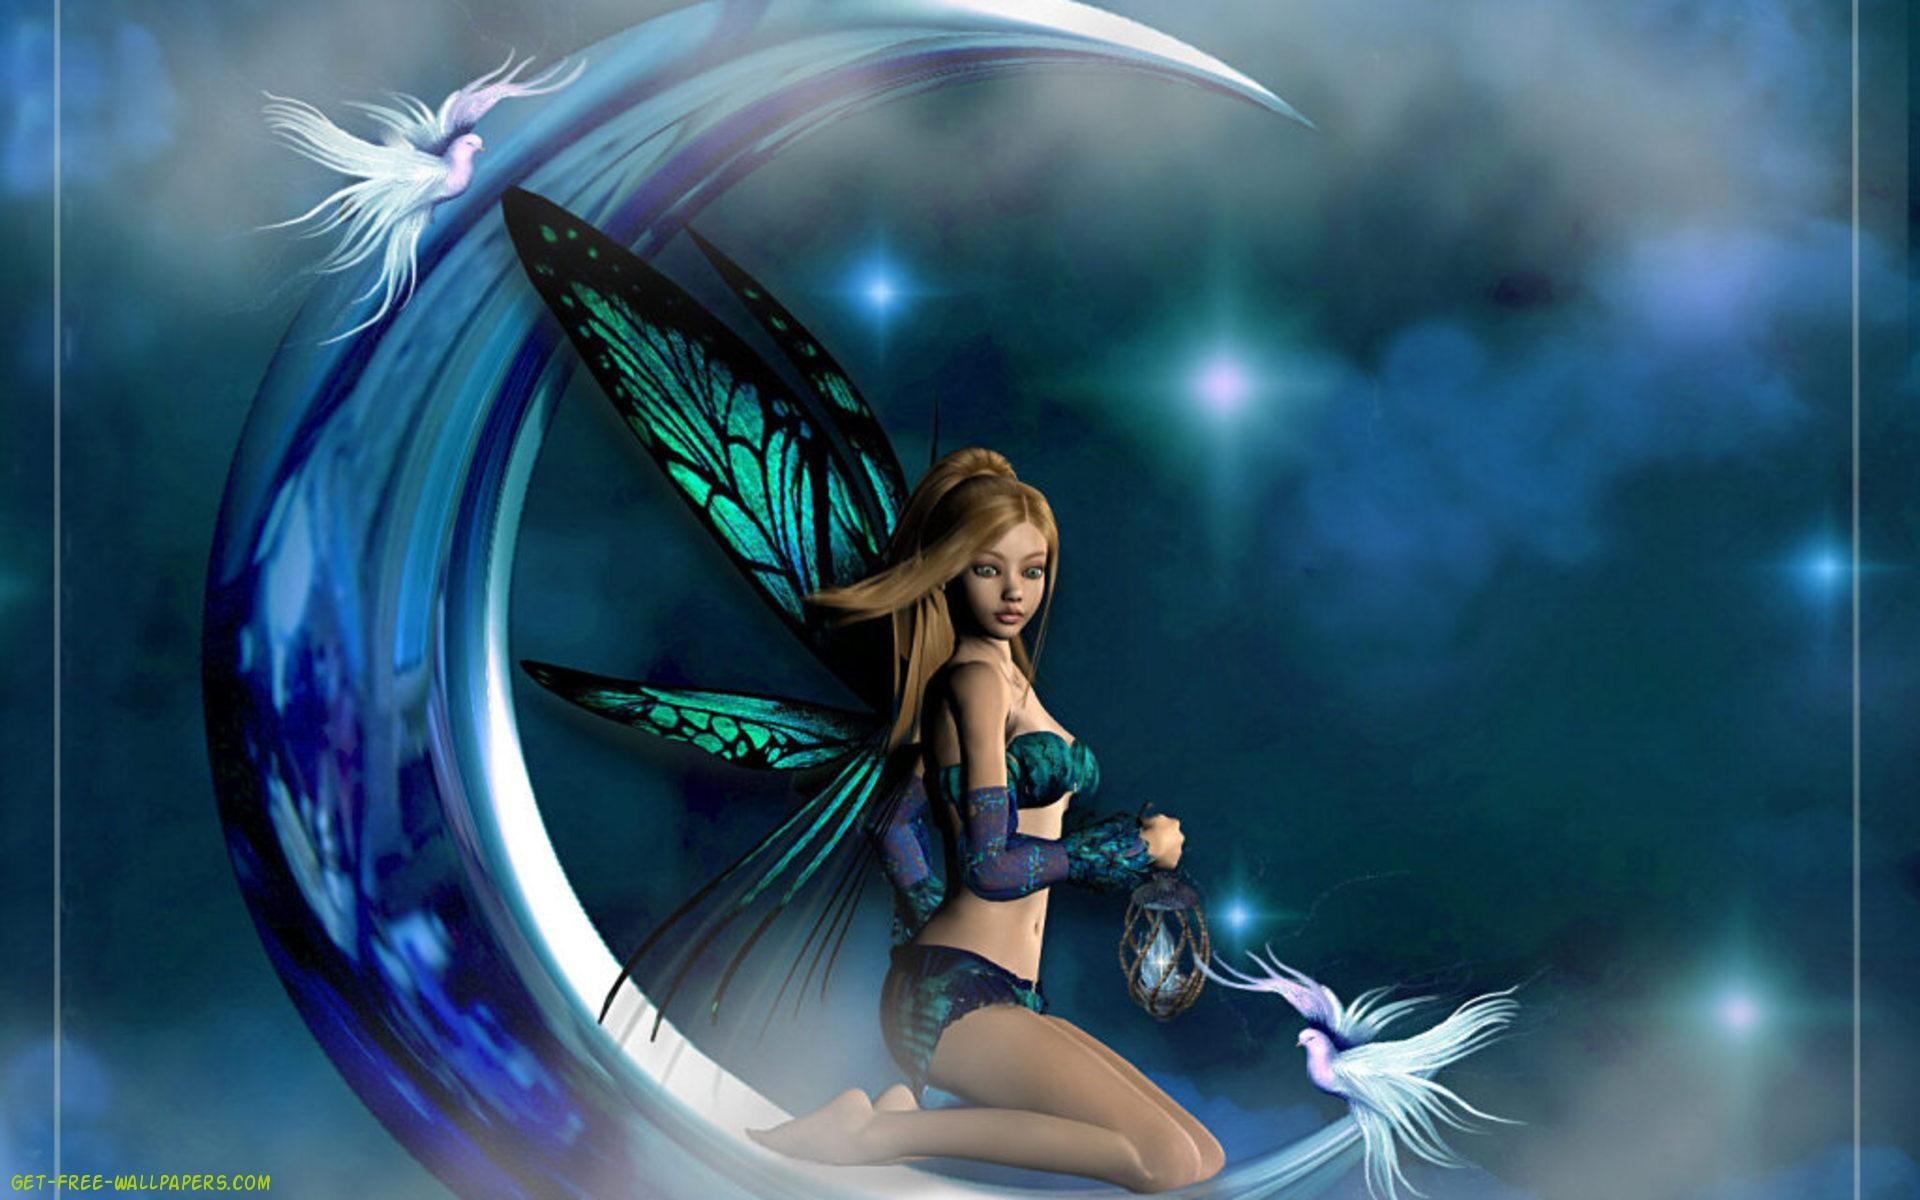 3d fairy wallpaper 53 images 1920x1080 cartoon images hd cartoon hd full high quality quality wallpapers 19201080 new hd voltagebd Image collections